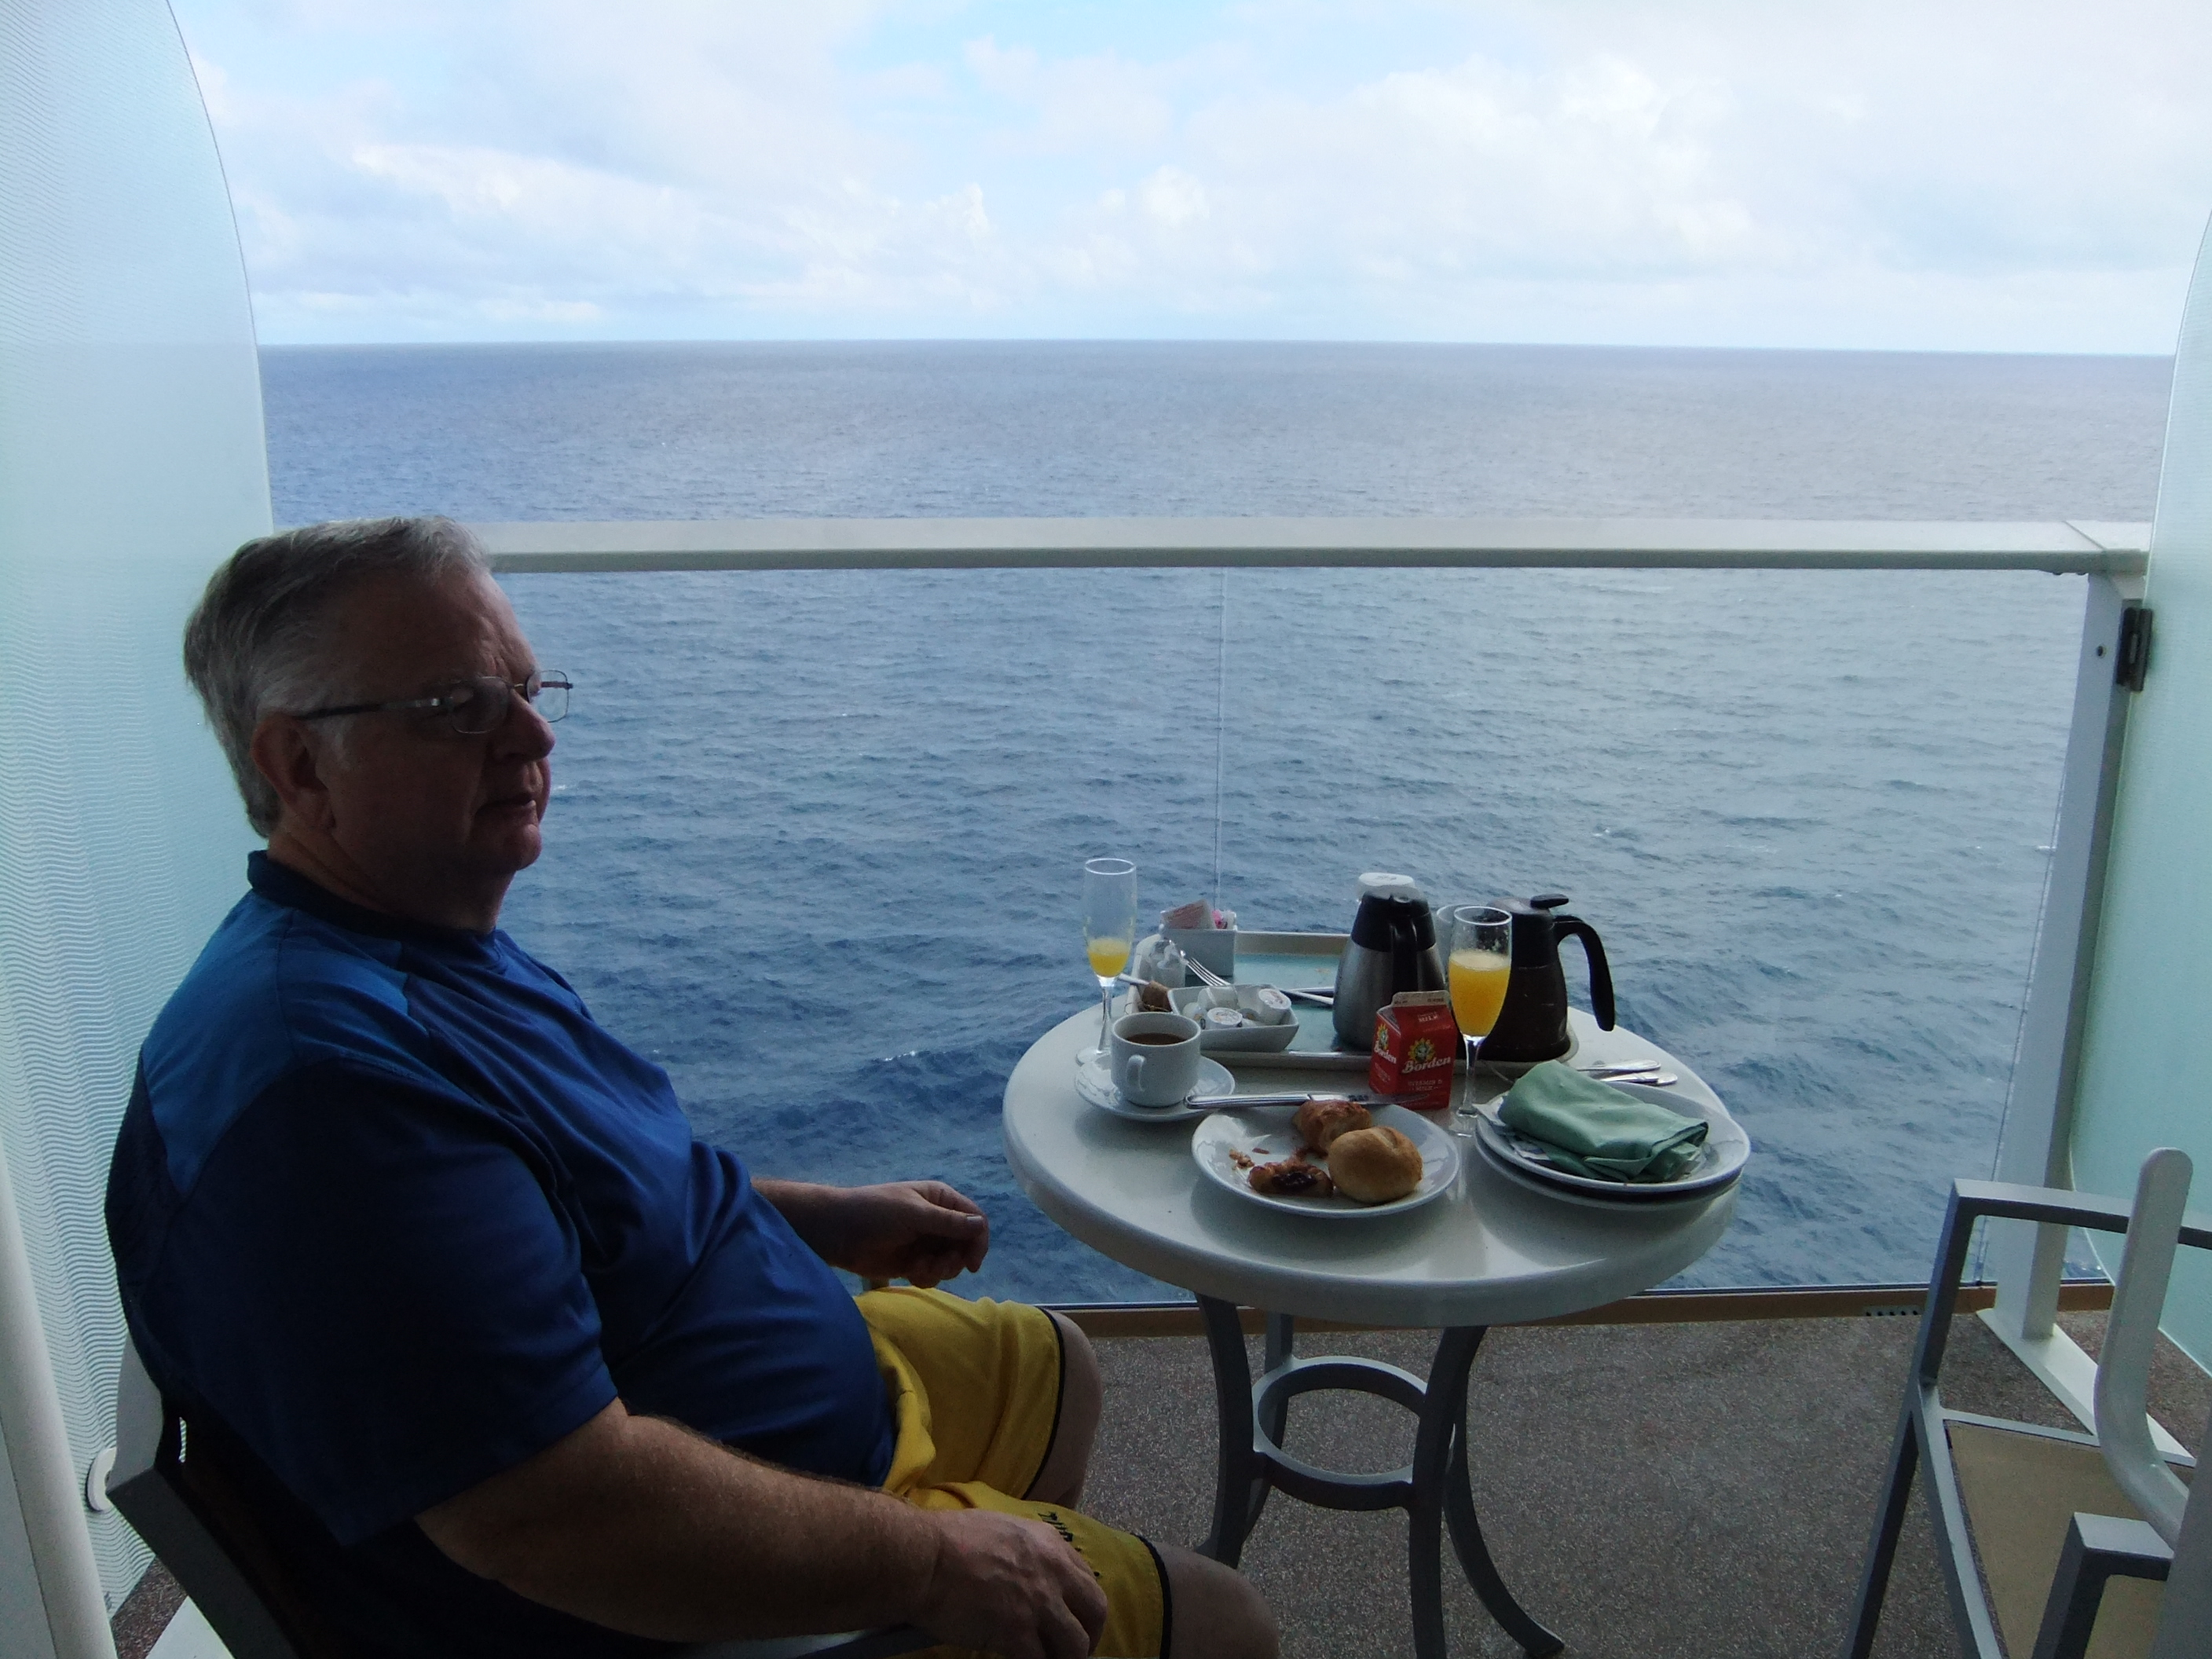 Royal caribbean oasis of the seas cruise review for cabin for Caribbean cruise balcony